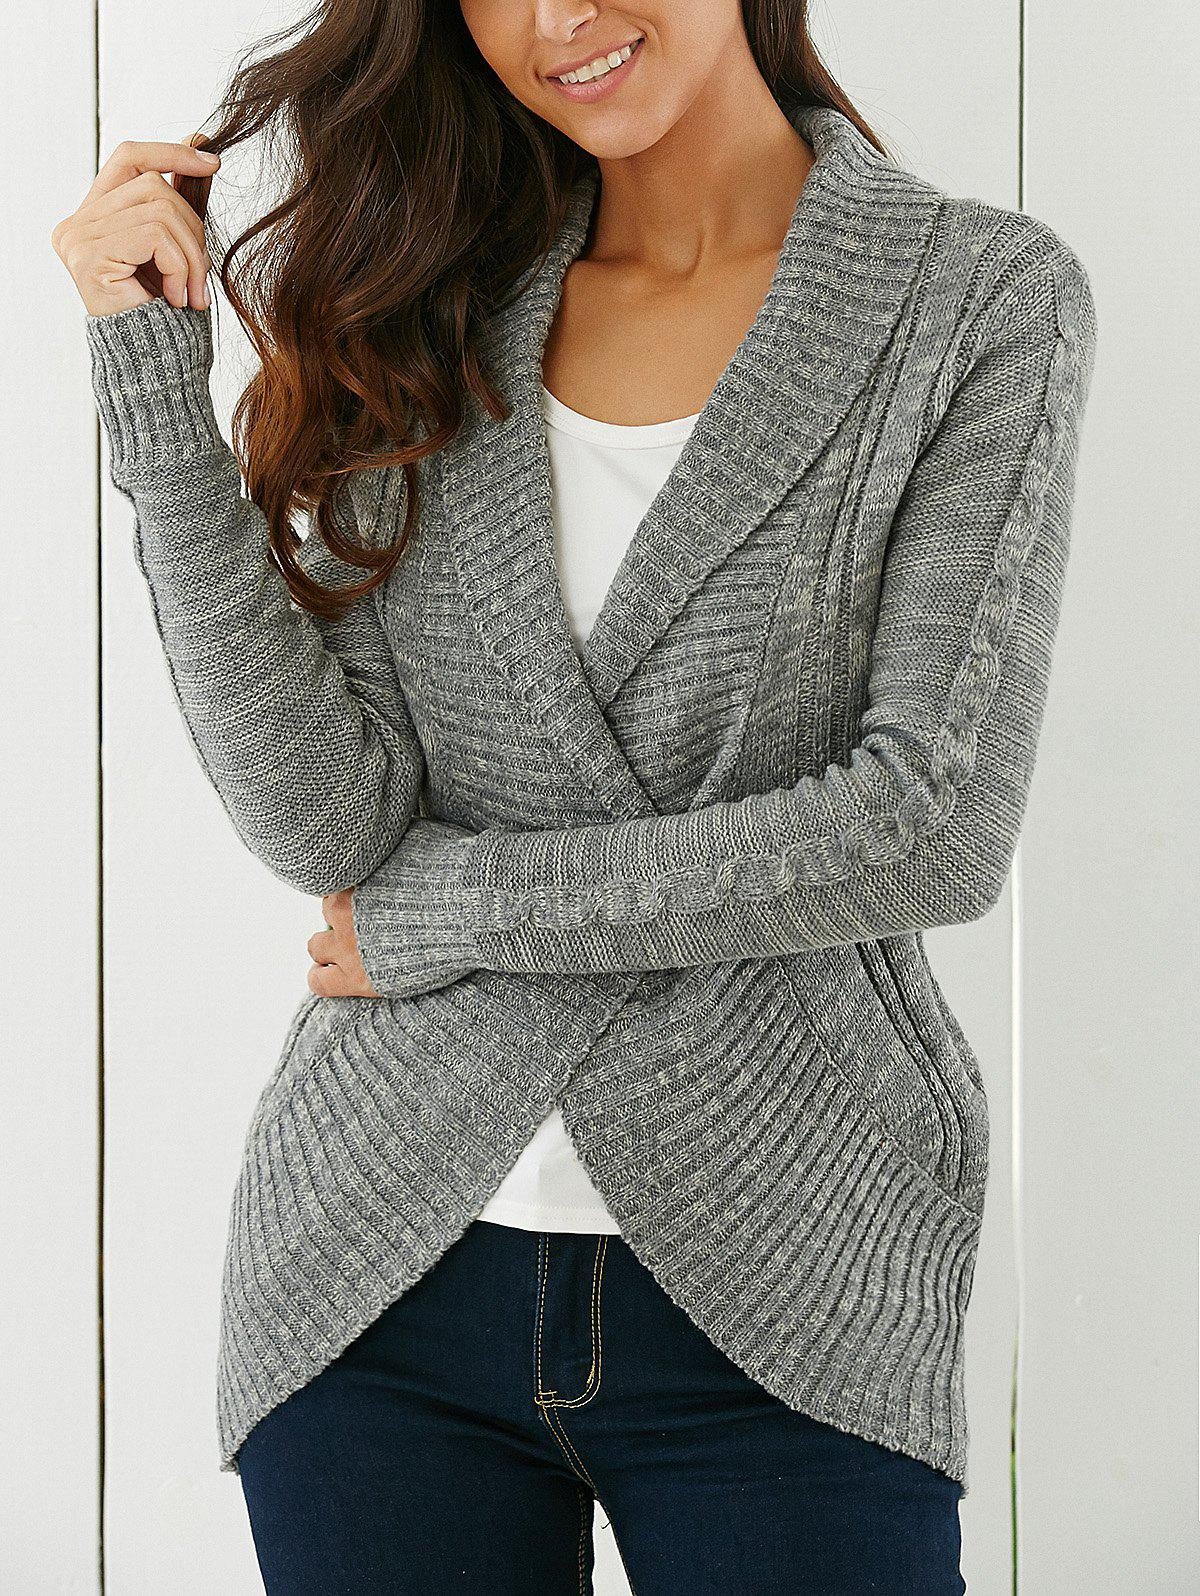 Shawl Collar Sweater. No matter how cold the day, a sweater is always a stylish way to stay warm. A shawl collar sweater in thick cable knit, paired with a simple pair of women's pants means staying warm and looking bestkapper.tk from a knee-length sweater coat with a shawl collar or a .